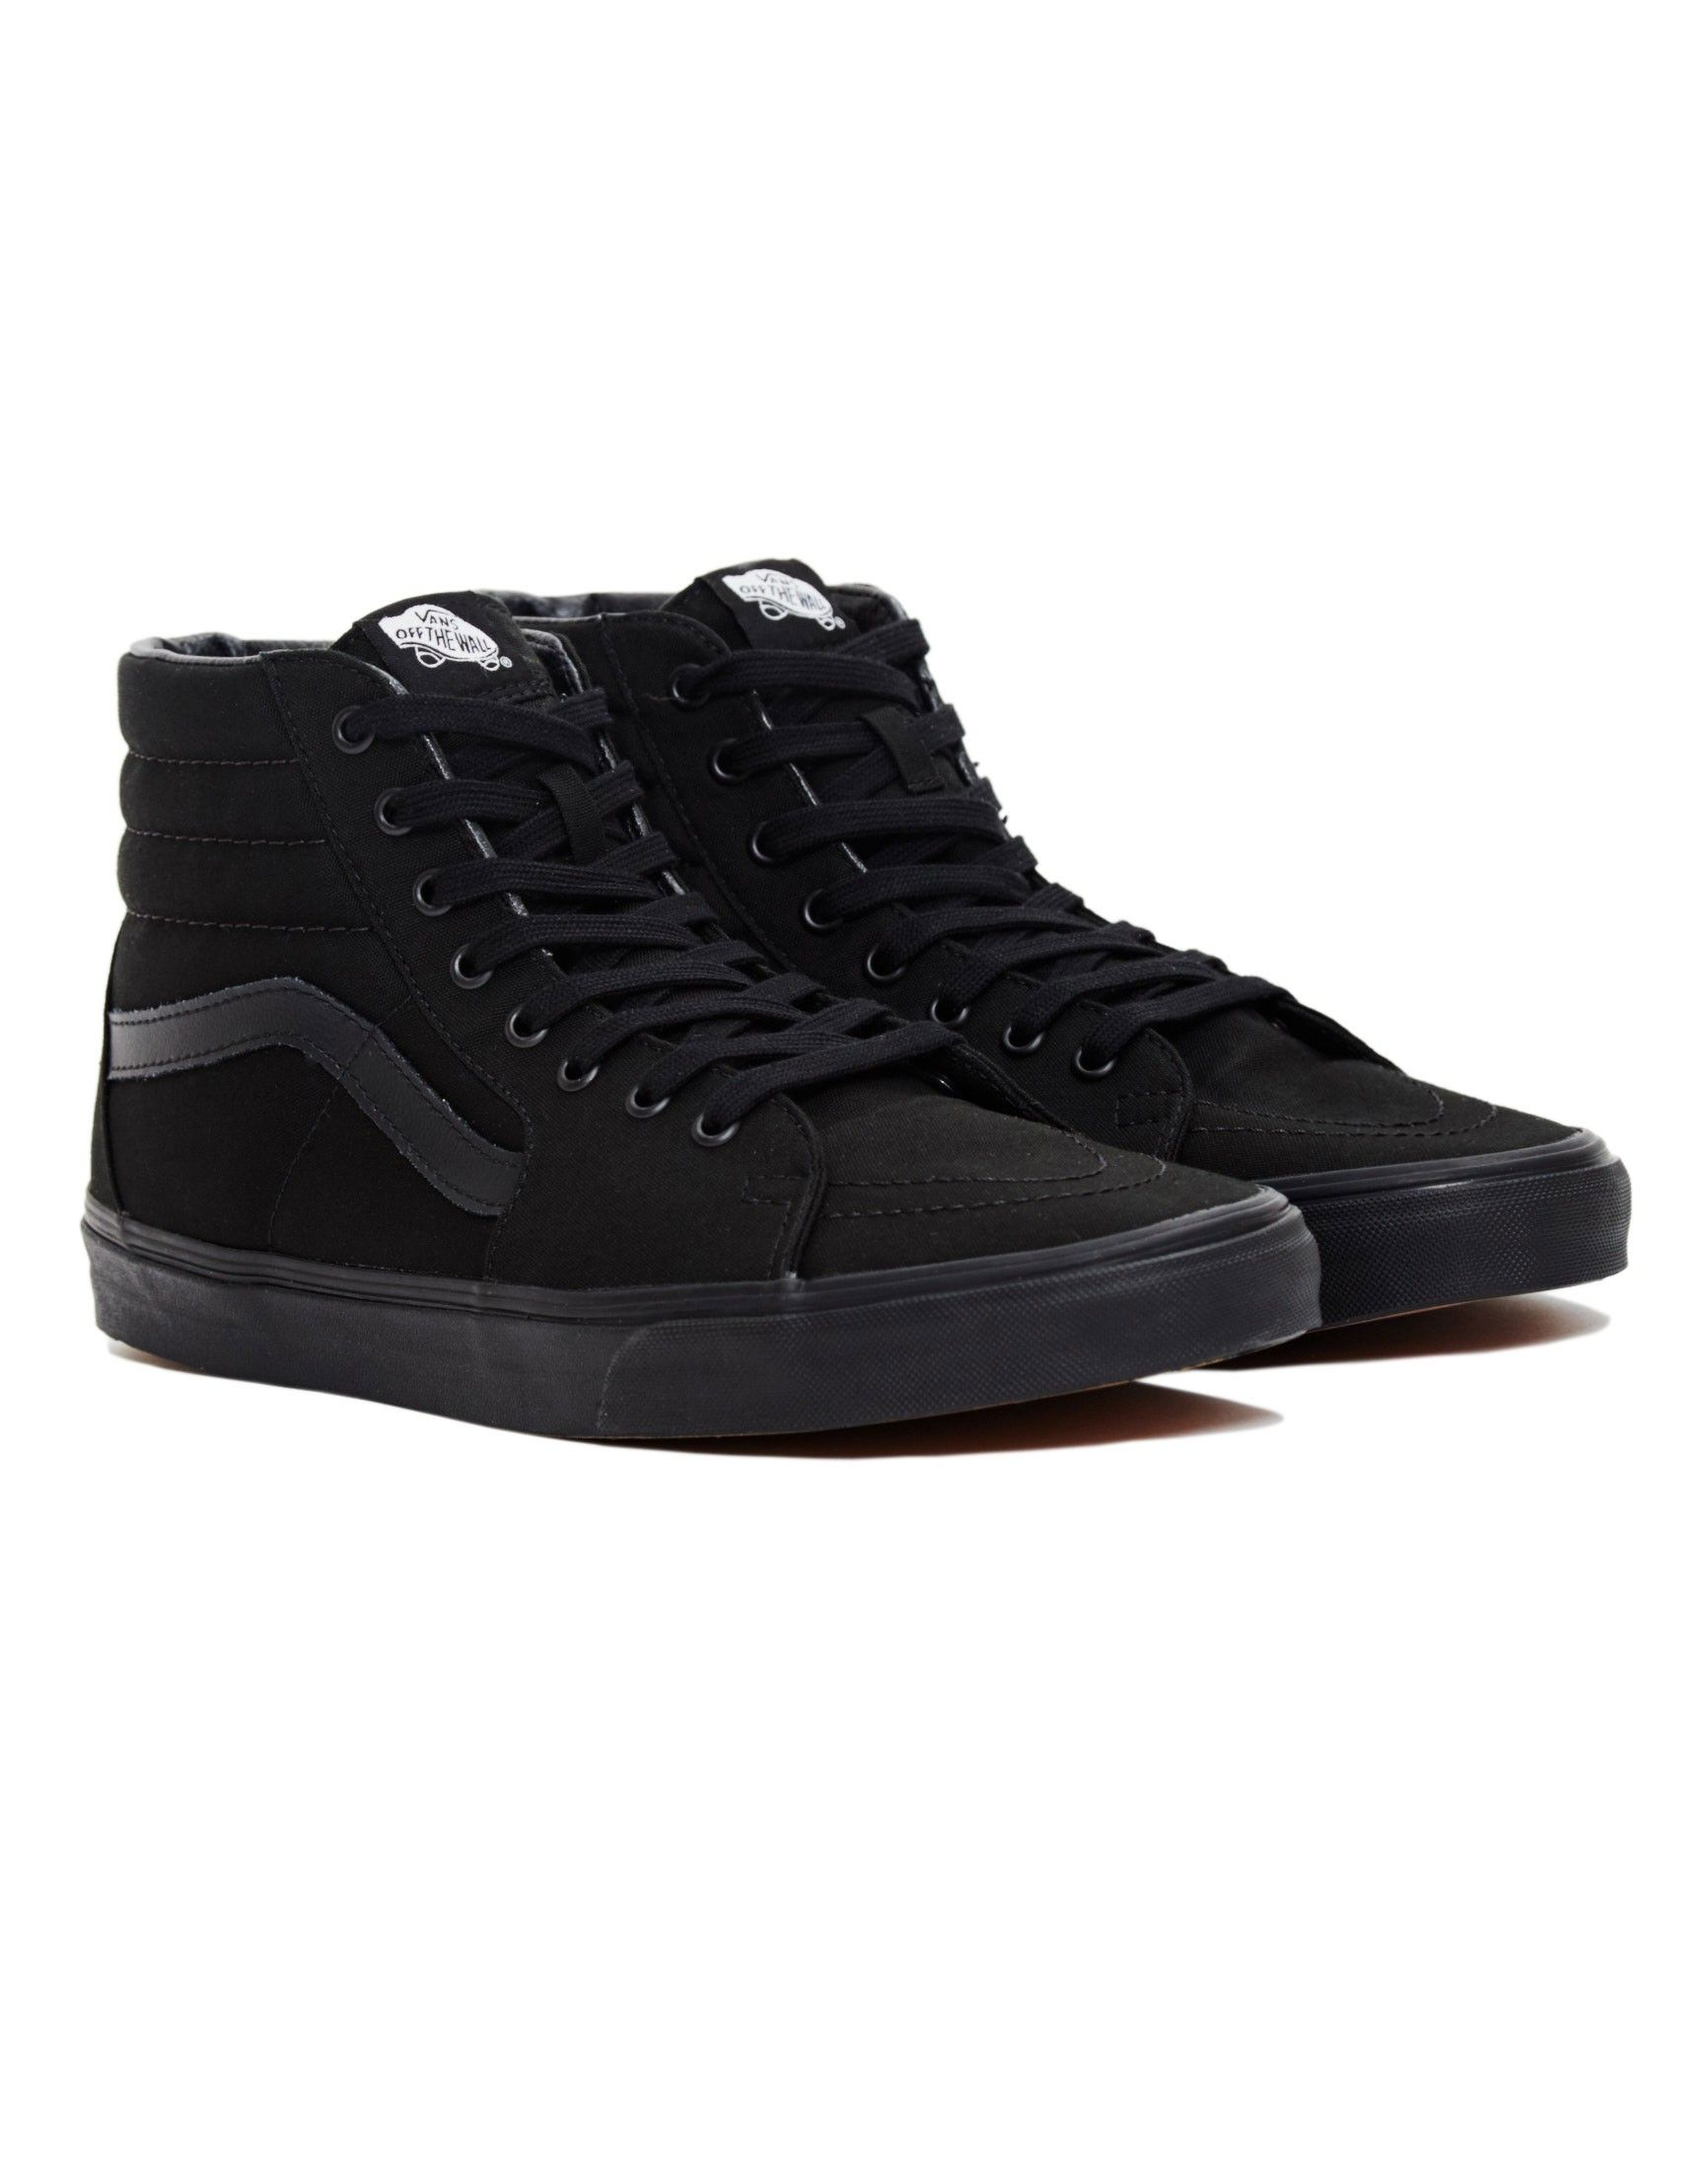 Vans Sk8-Hi Trainers All Black   SHOP NOW at The Idle Man    StyleMadeEasy 82a398bf2d5